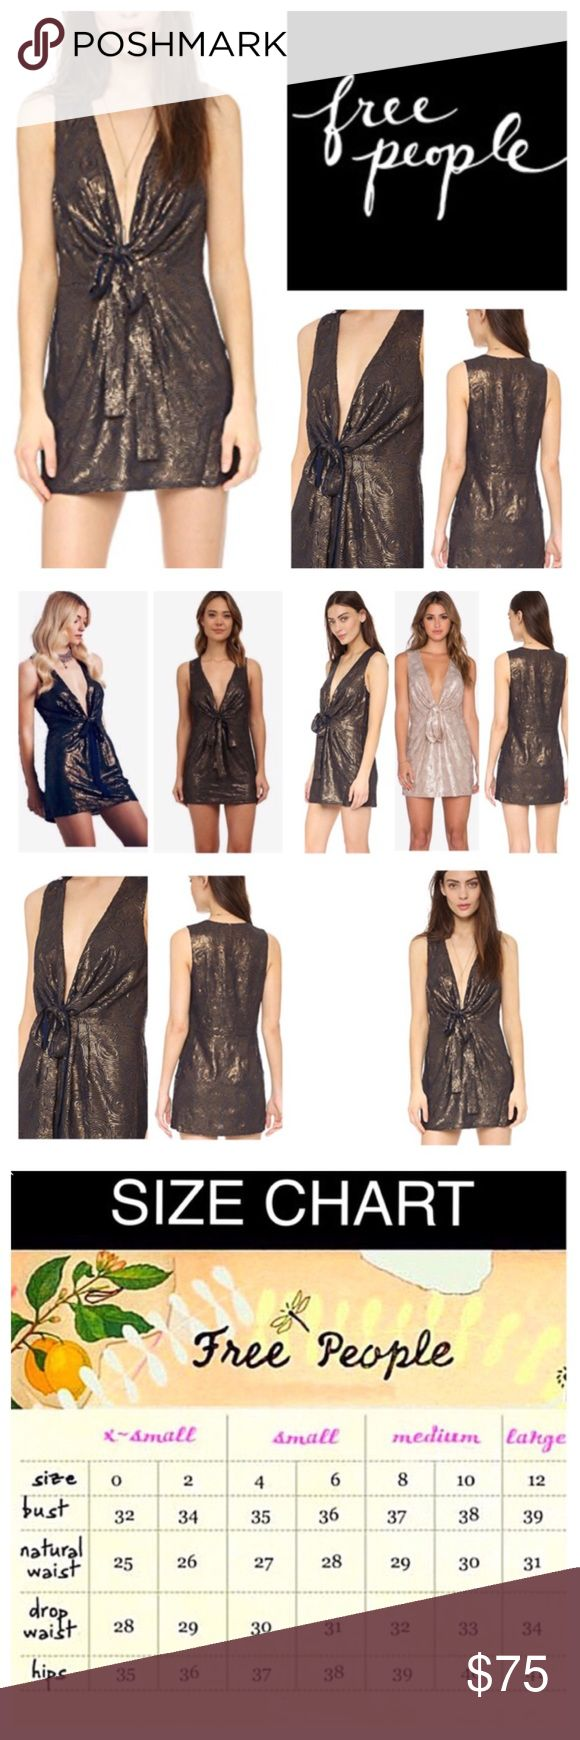 """🆕Free People Party Paris Rock Sequin Mini.  NWOT. 🆕Free People Party Paris Rock Sequin Mini Dress, 100% polyester, washable, 16.5"""" armpit to armpit (33"""" all around), 31"""" waist no stretch, 32"""" length, swirls of sequins form intricate patterns, a center sash clinches the softly pleated bodice, lined, sleeveless, beaded chiffon fabric, extra sequins attached, measurements are approx.  New without tag, never worn.  NO TRADES Free People Dresses"""